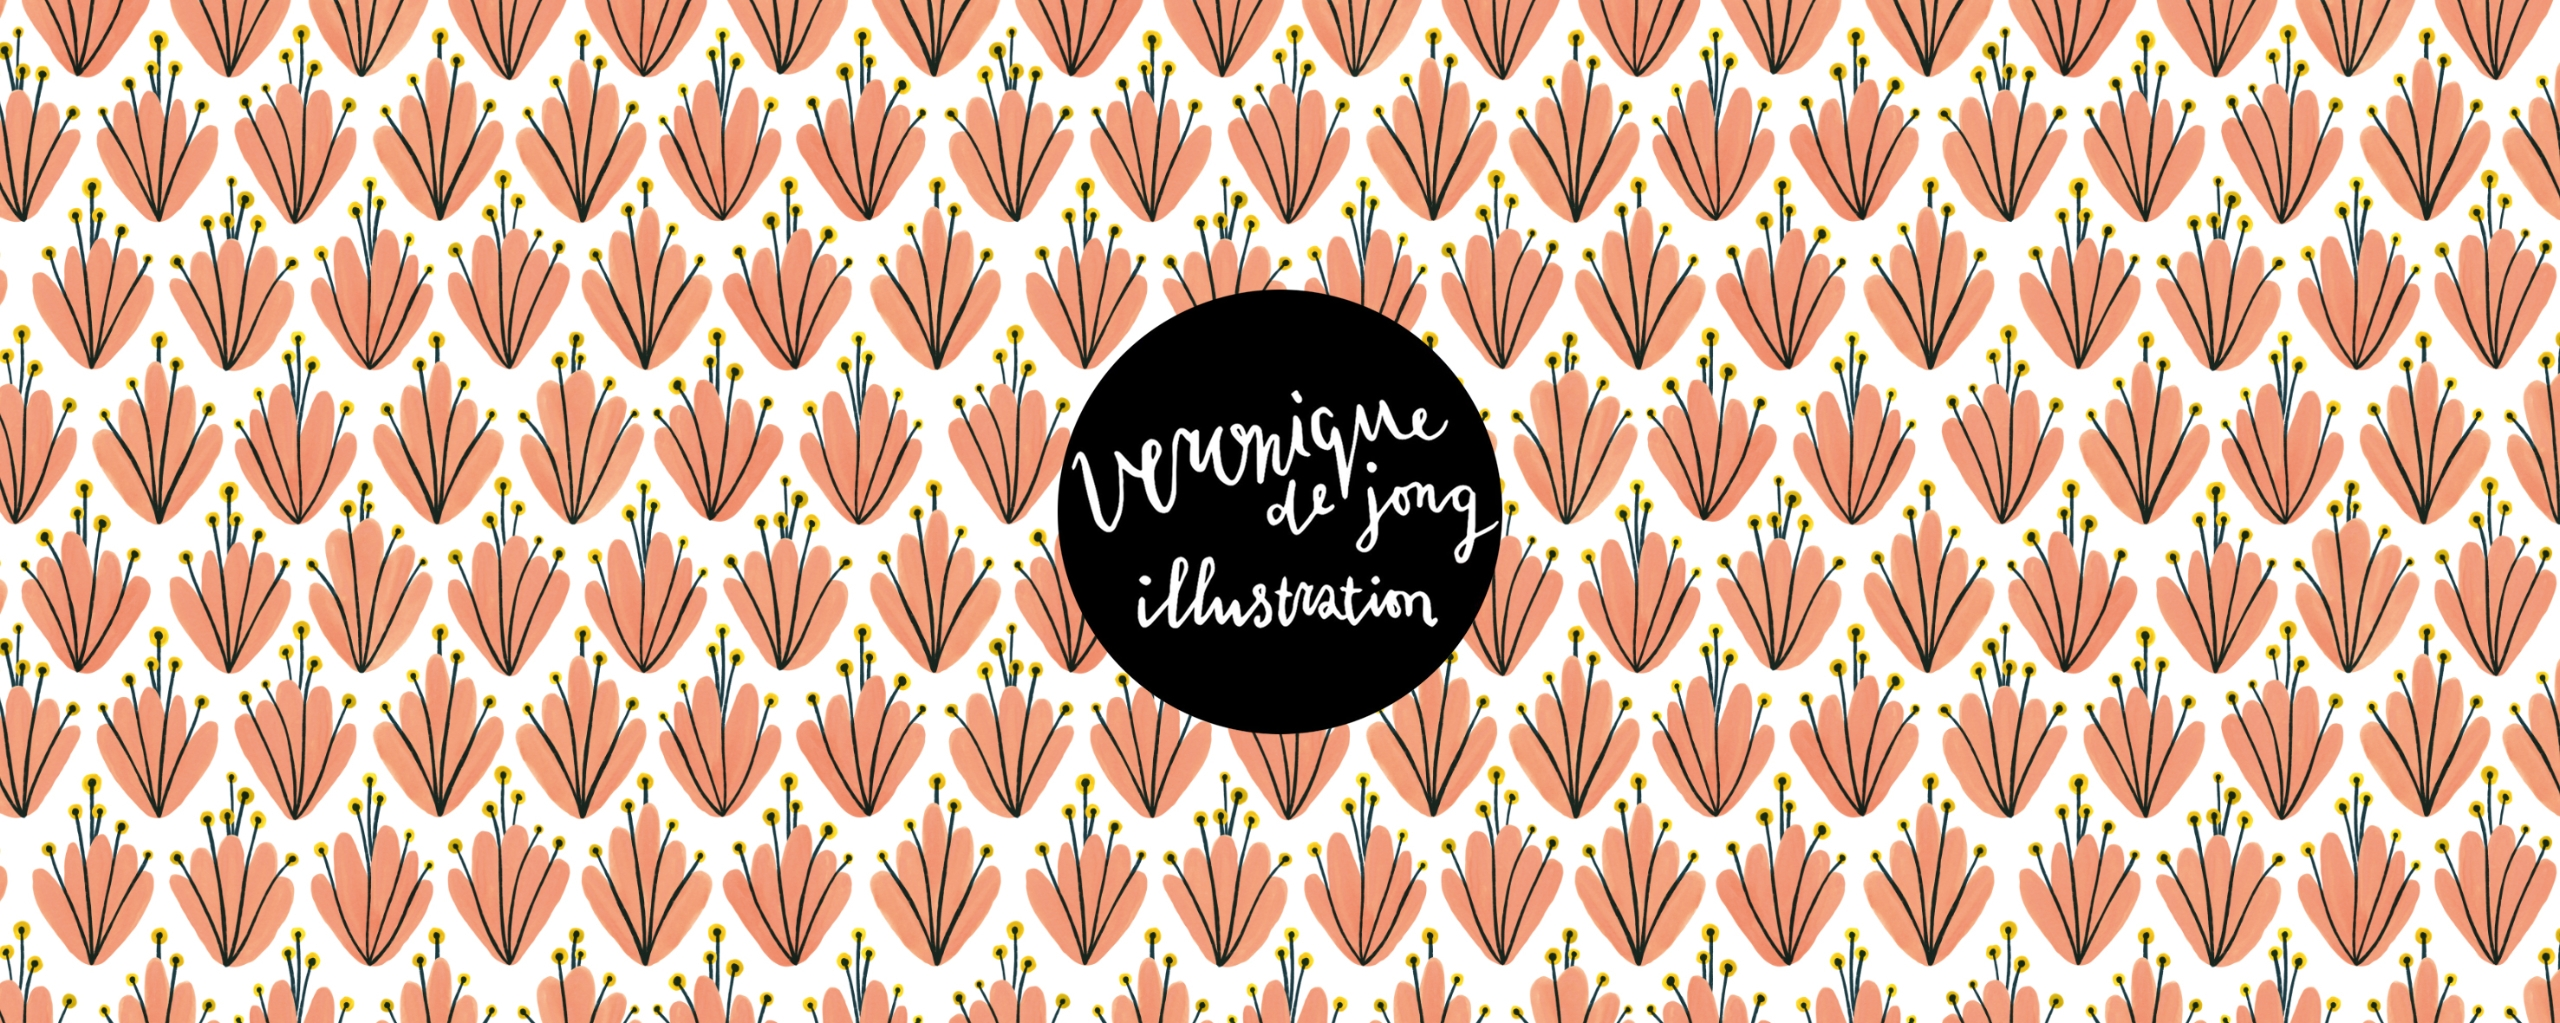 Veronique de Jong (@veroniquedejong) Cover Image